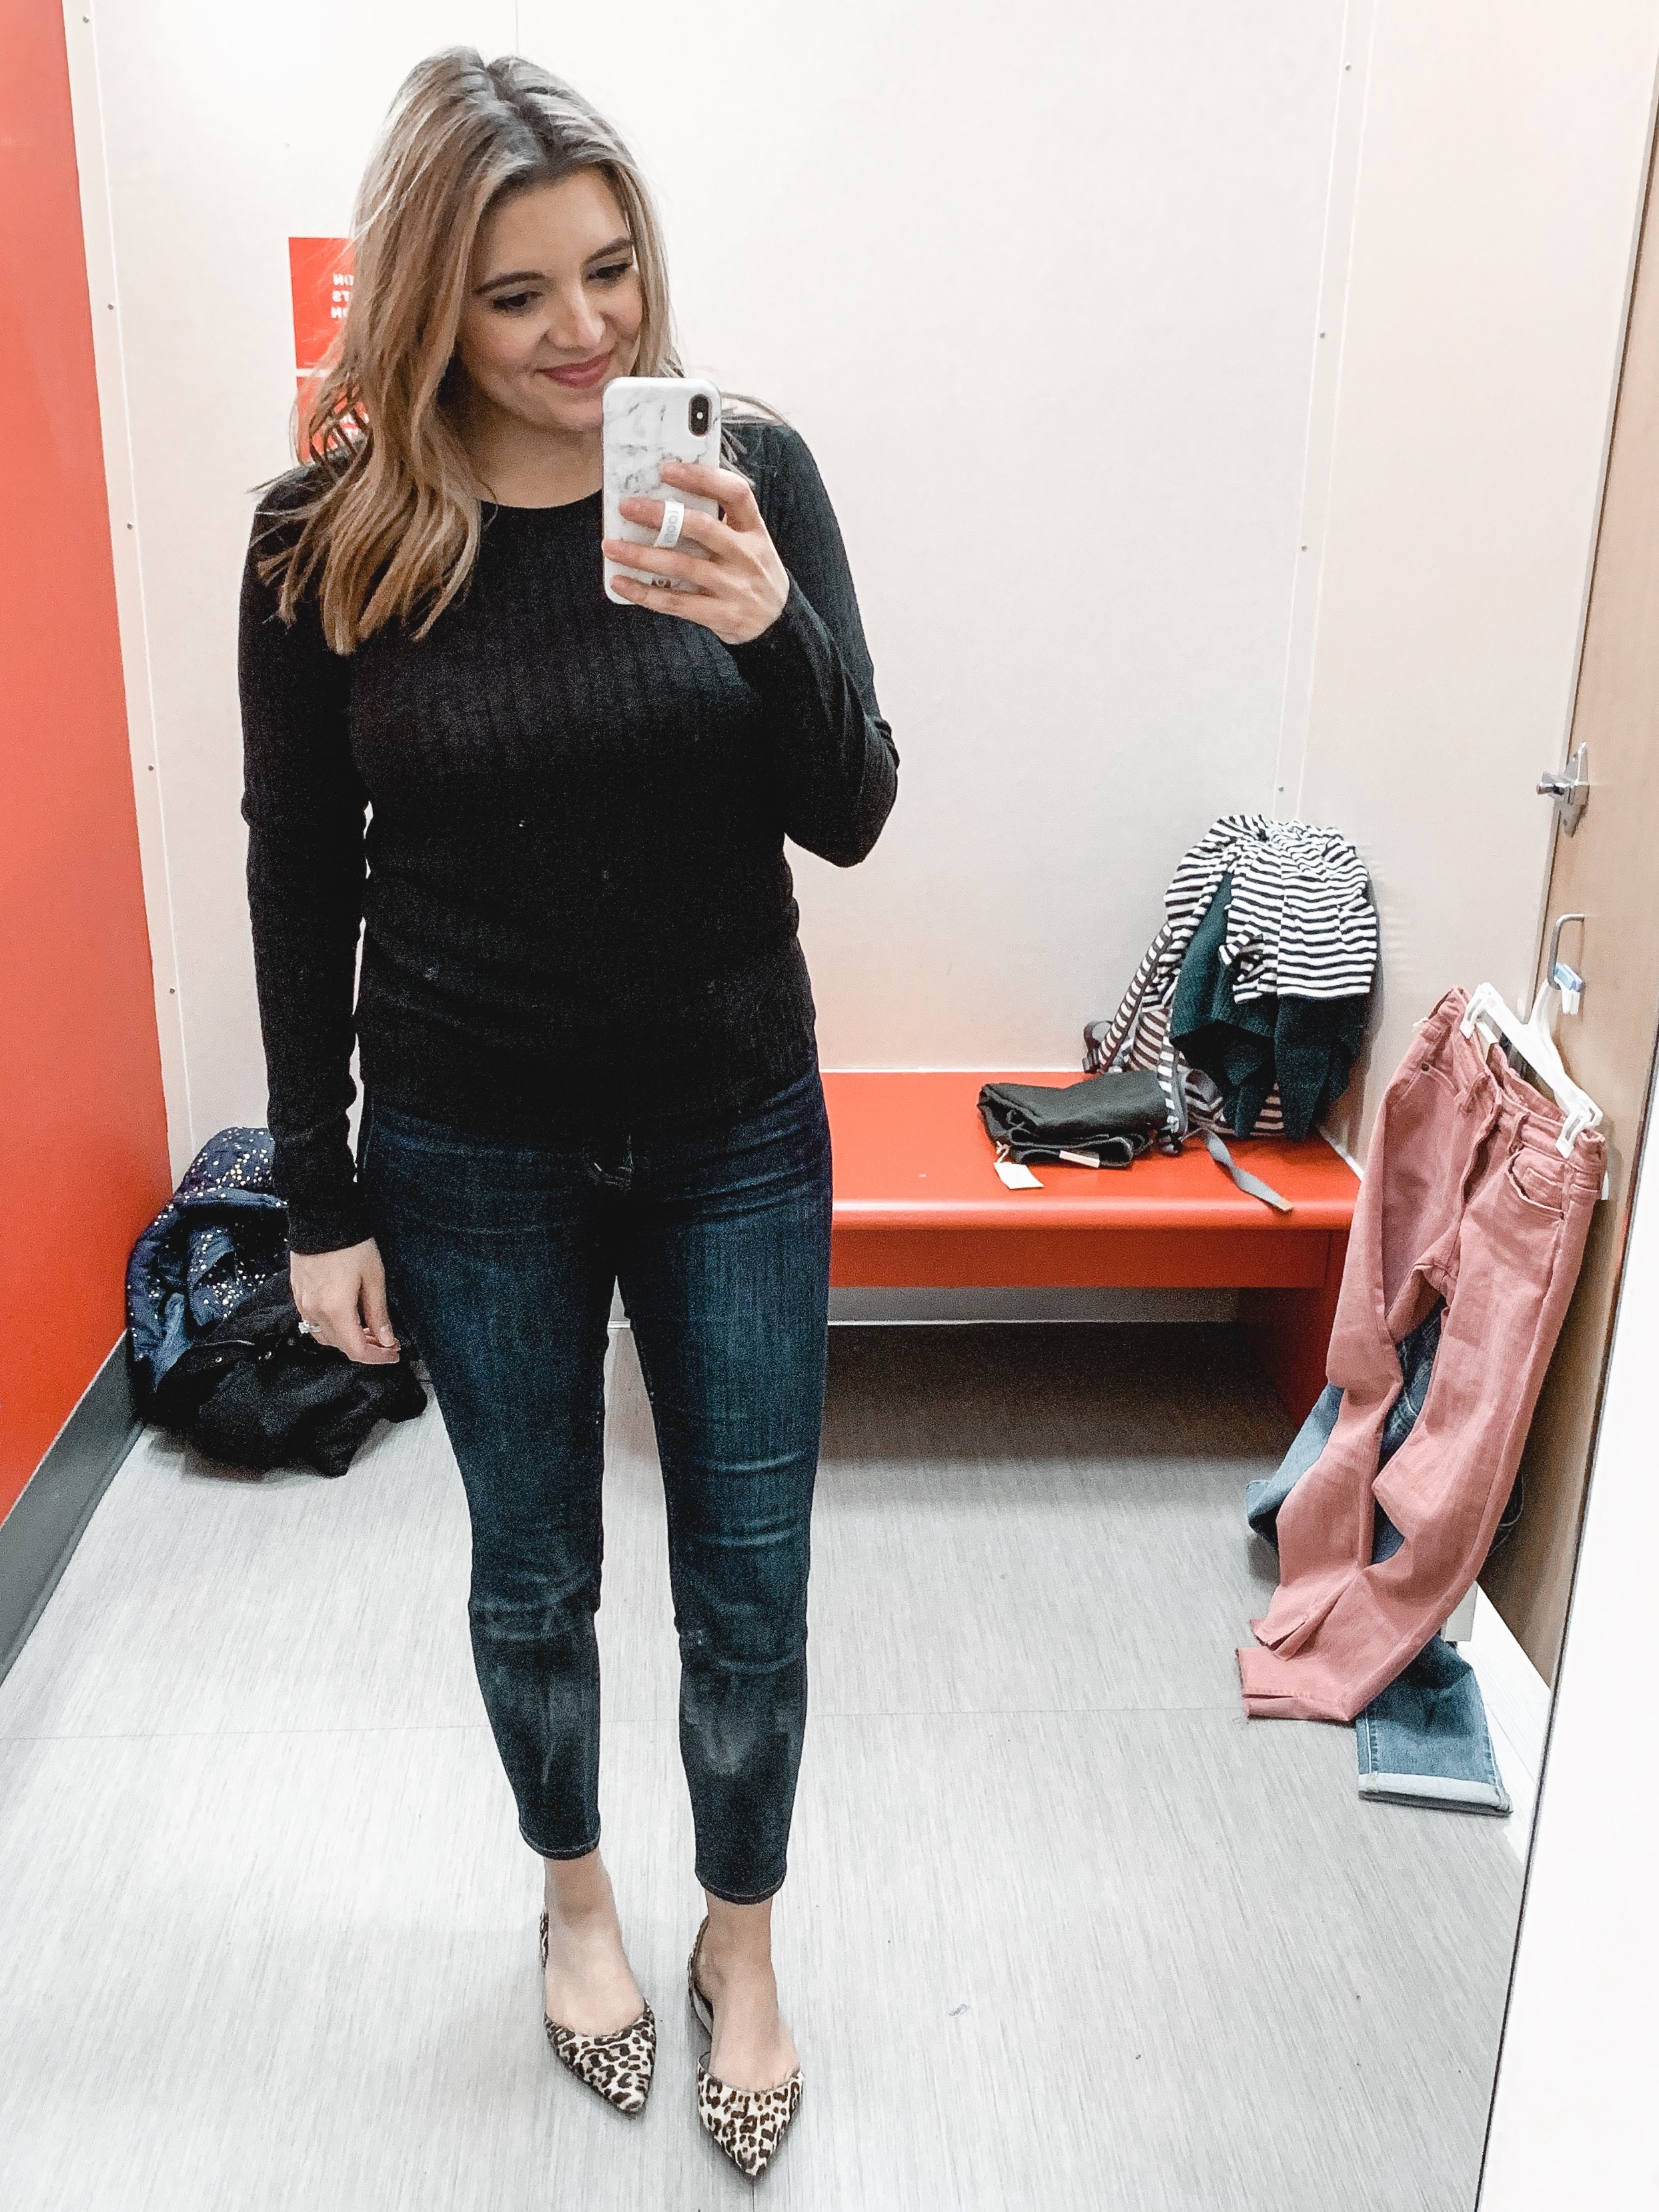 Affordable style blogger, Lauren Dix shares a February Target try on session with ten winter into spring outfits!